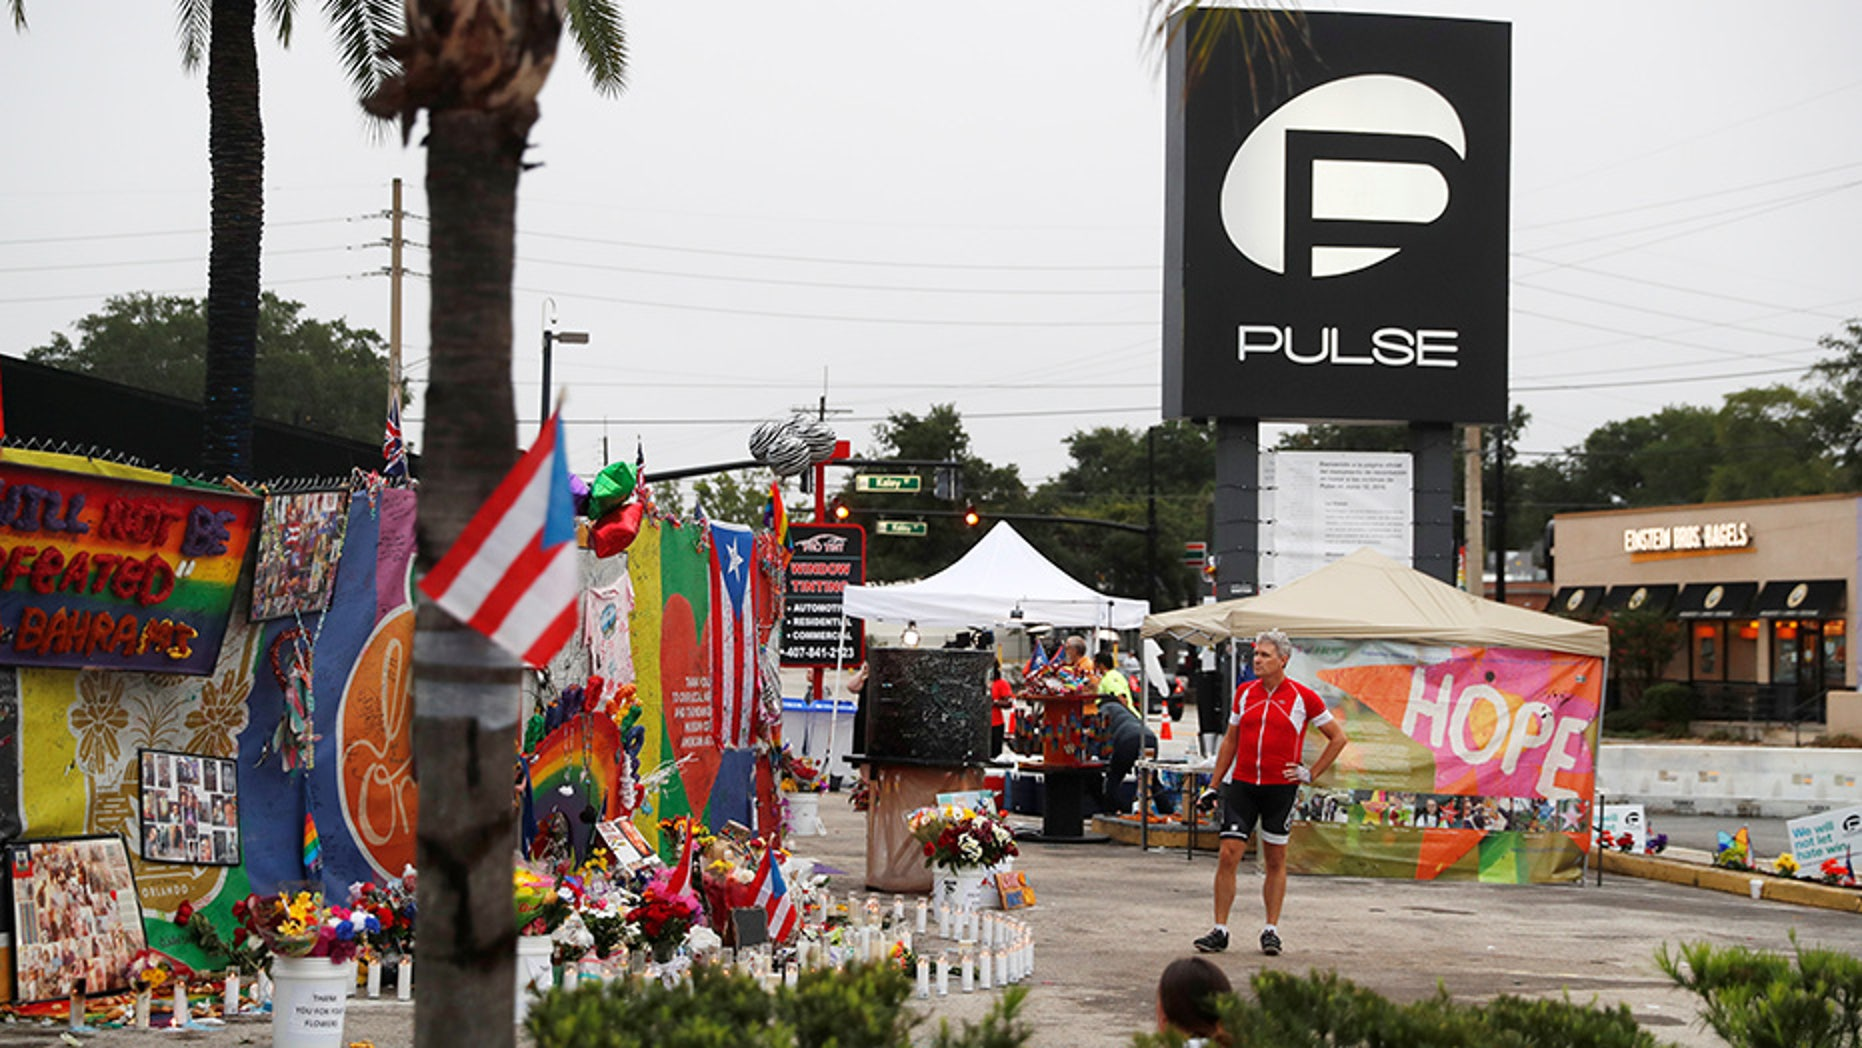 More than 35 survivors and families of victims of the Pulse nightclub attack banded together to announce they have filed a federal civil rights lawsuit against the city and police of Orlando.